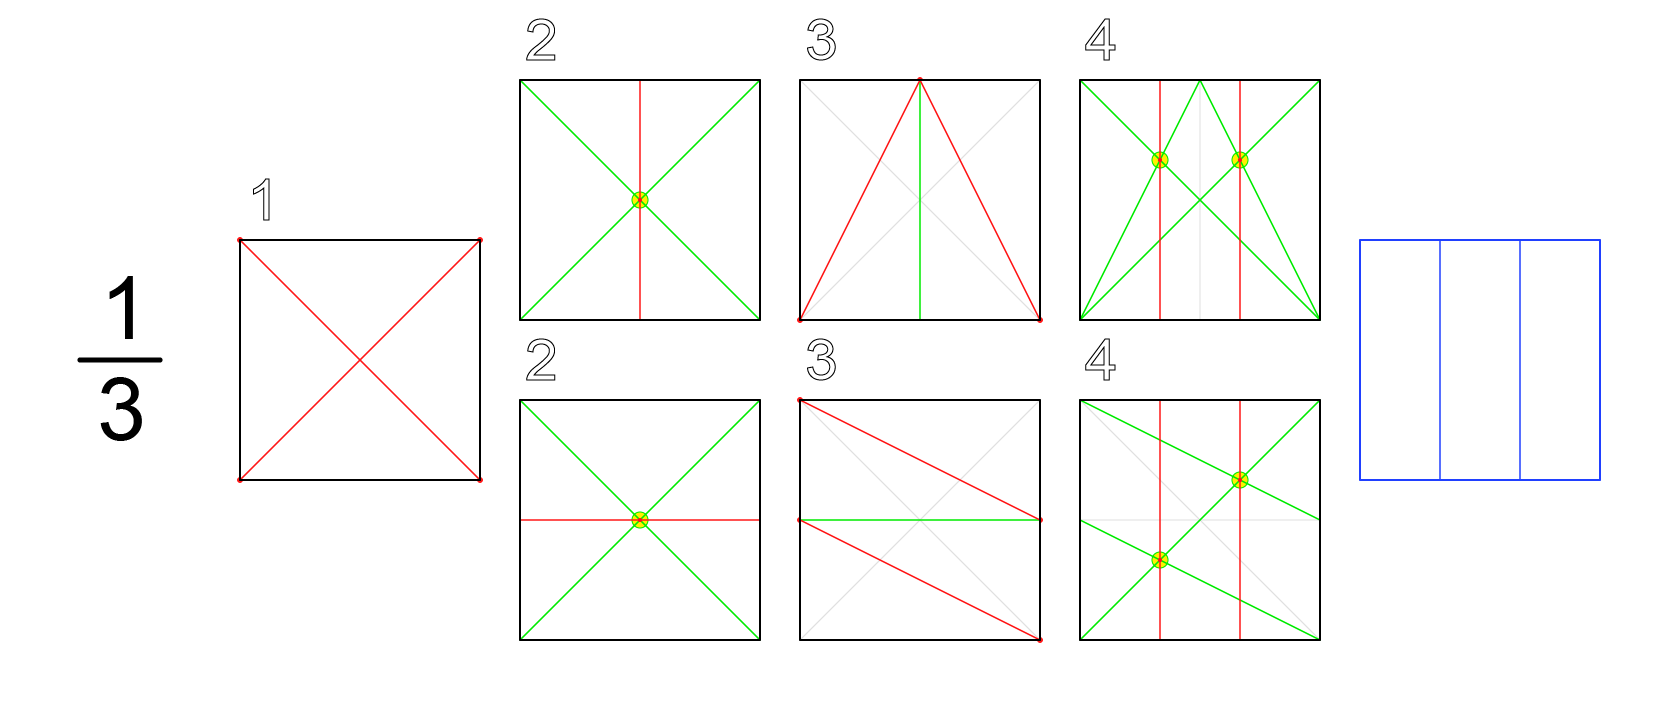 How To Divide A Circle Into 9 Equal Parts Using Compass